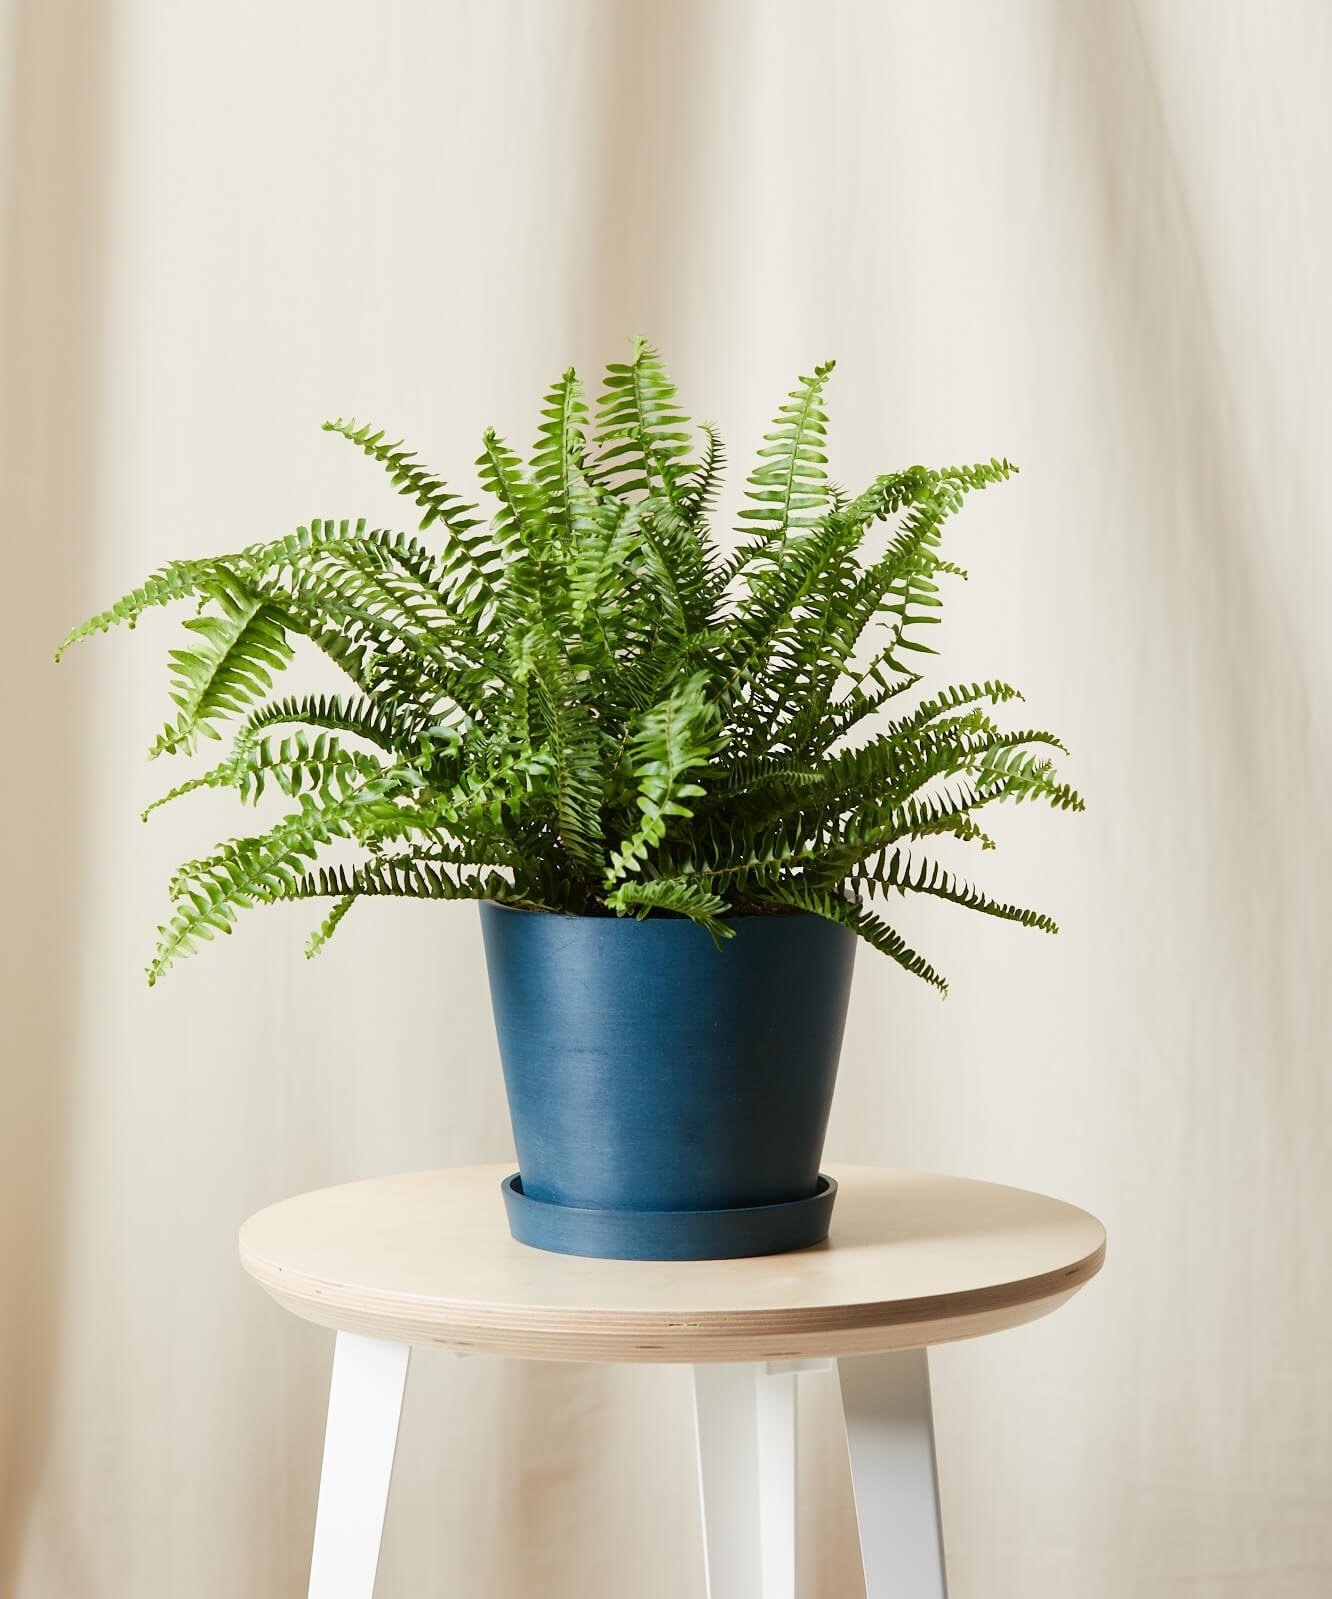 The fern in a blue pot